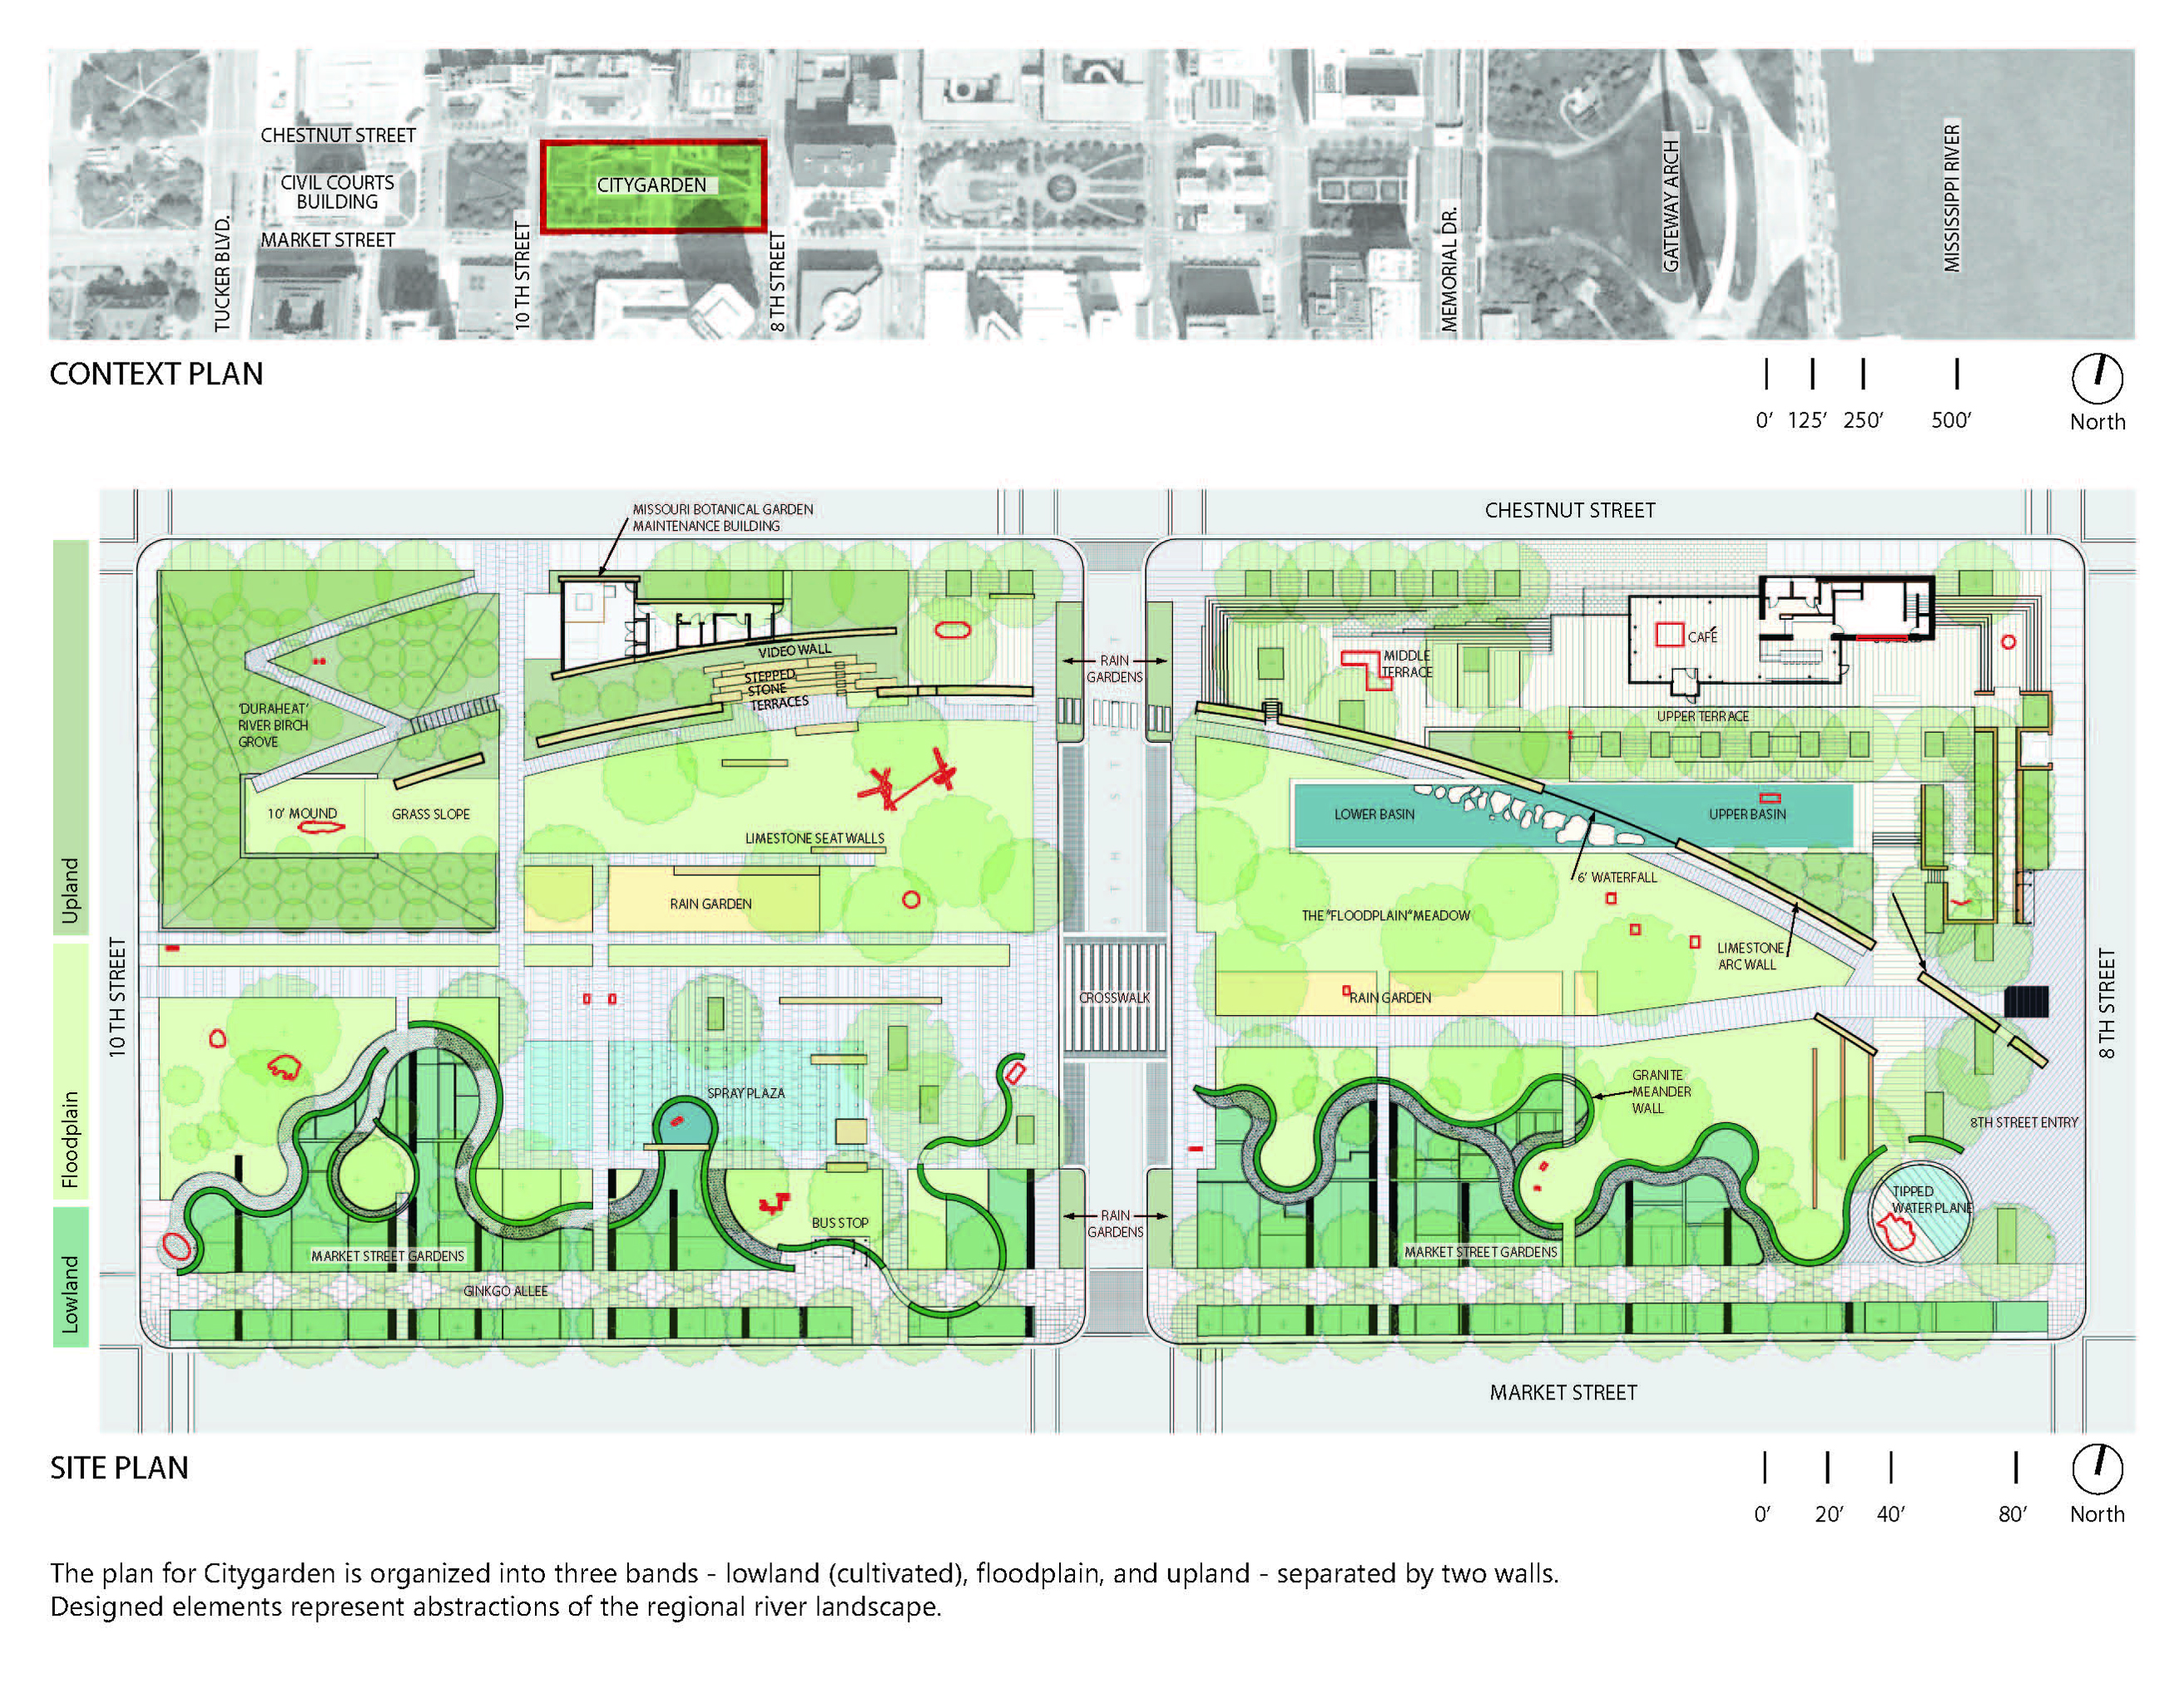 Asla 2011 professional awards citygarden for Planner site